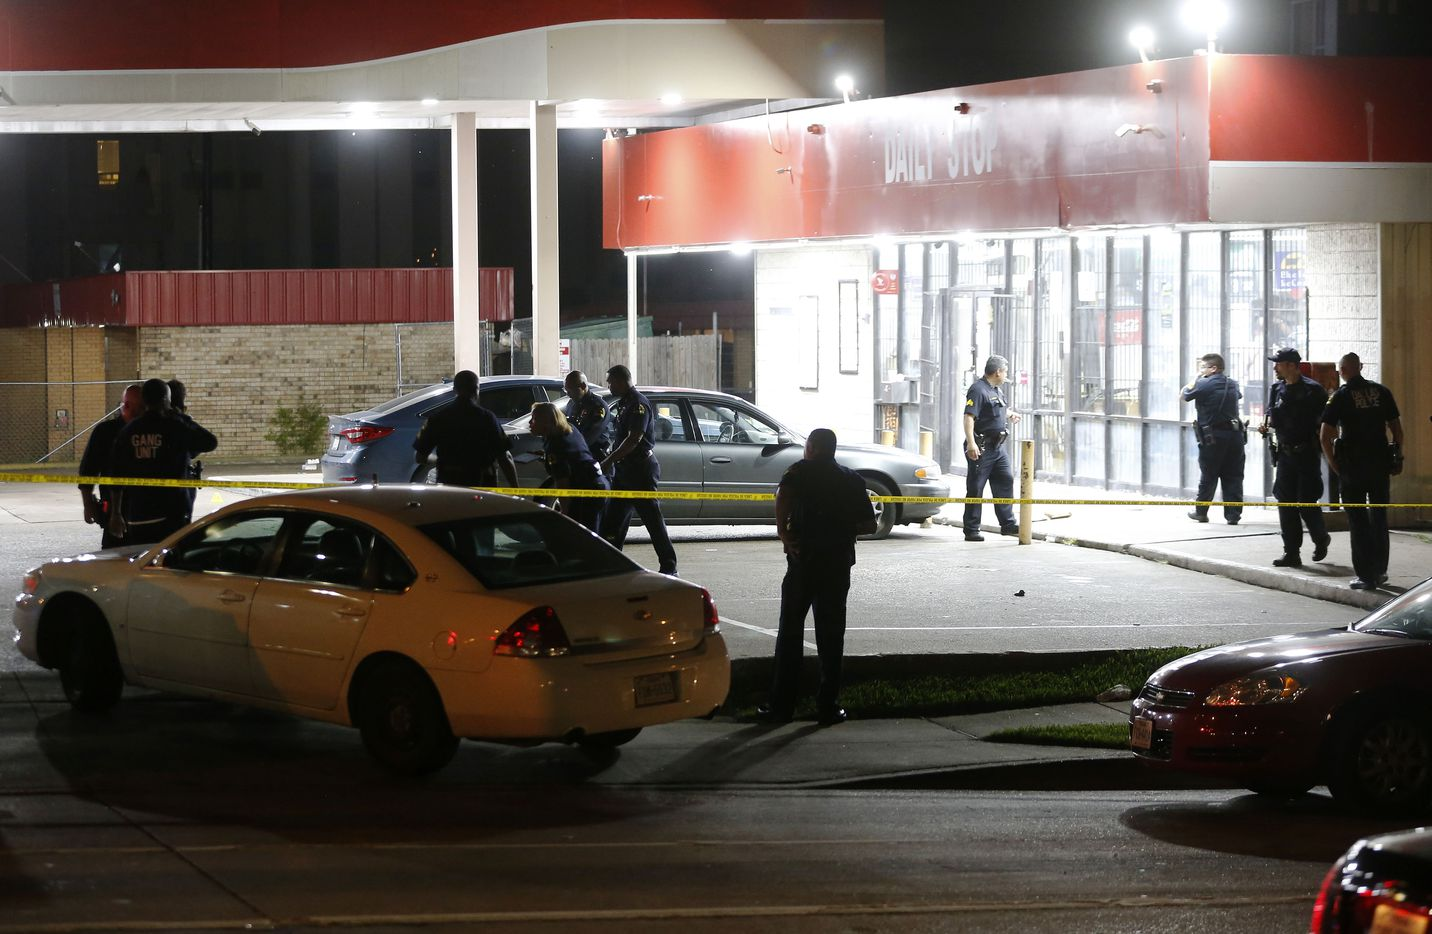 Dallas police investigate the scene of a shooting where a 13-year-old boy died after being caught in crossfire near a Pleasant Grove gas station in the 9400 block of Bruton Avenue in Dallas on June 4, 2019.